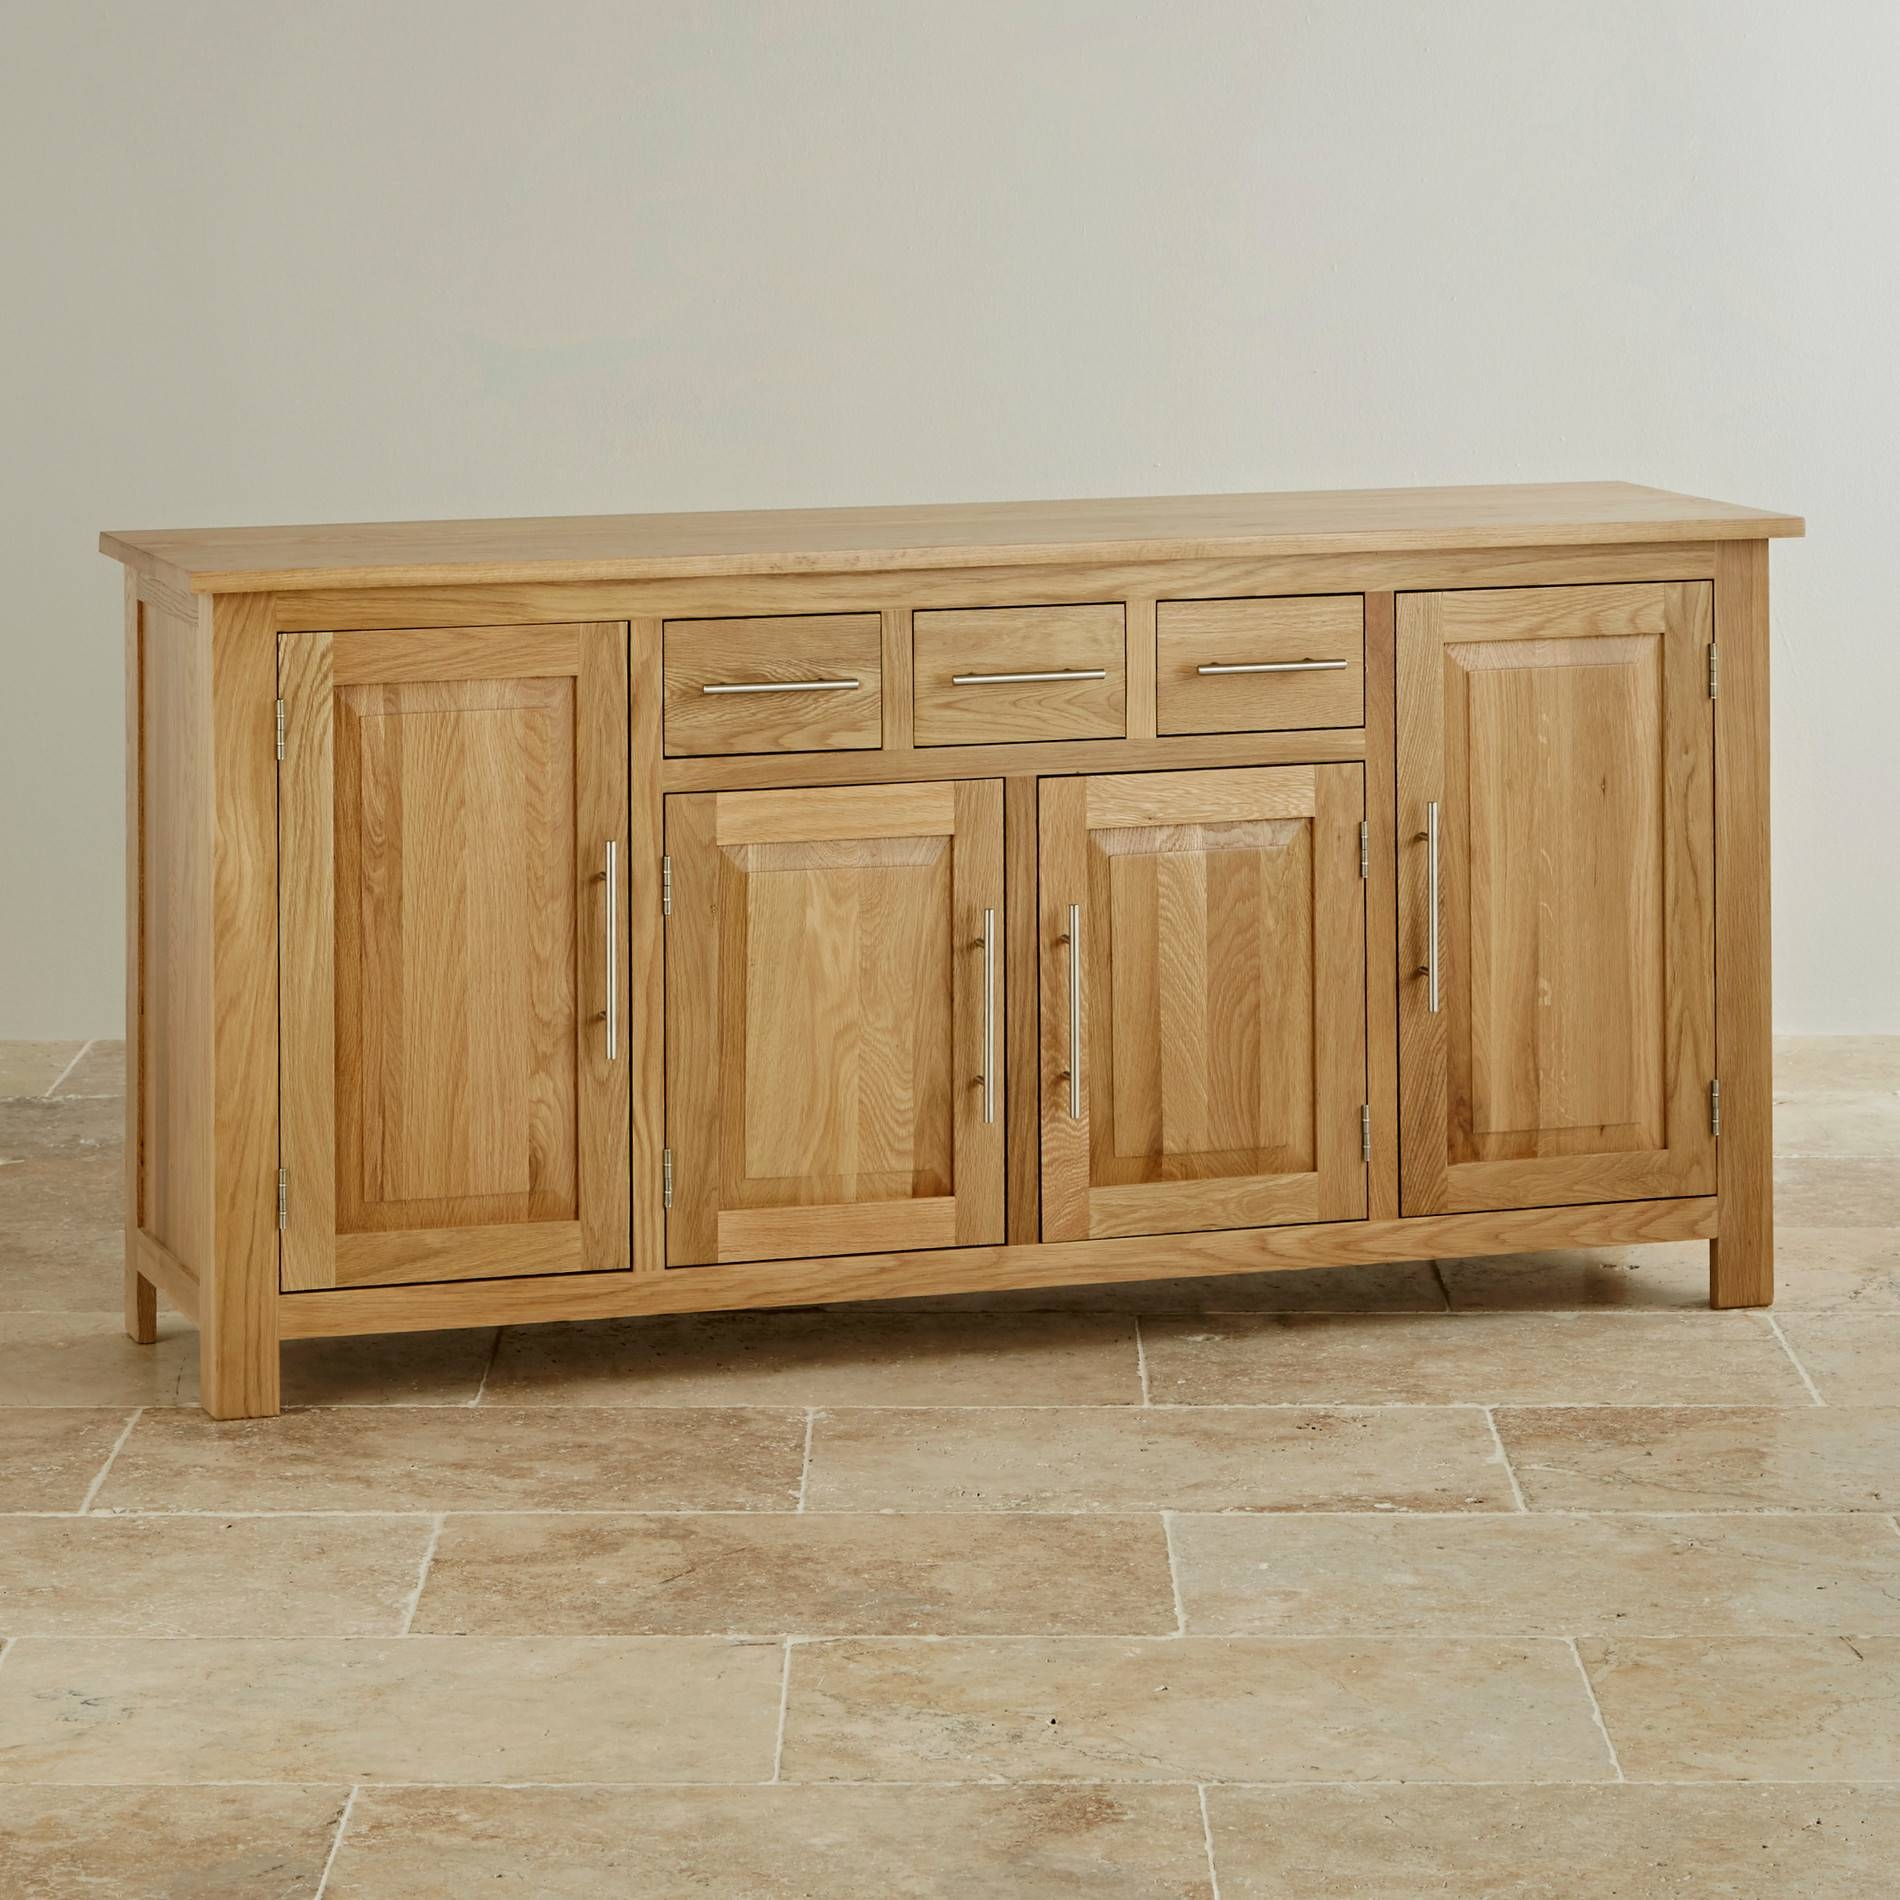 Rivermead Natural Solid Oak Large Sideboard | Oak Furniture Land With Regard To Oak Sideboards For Sale (View 15 of 30)